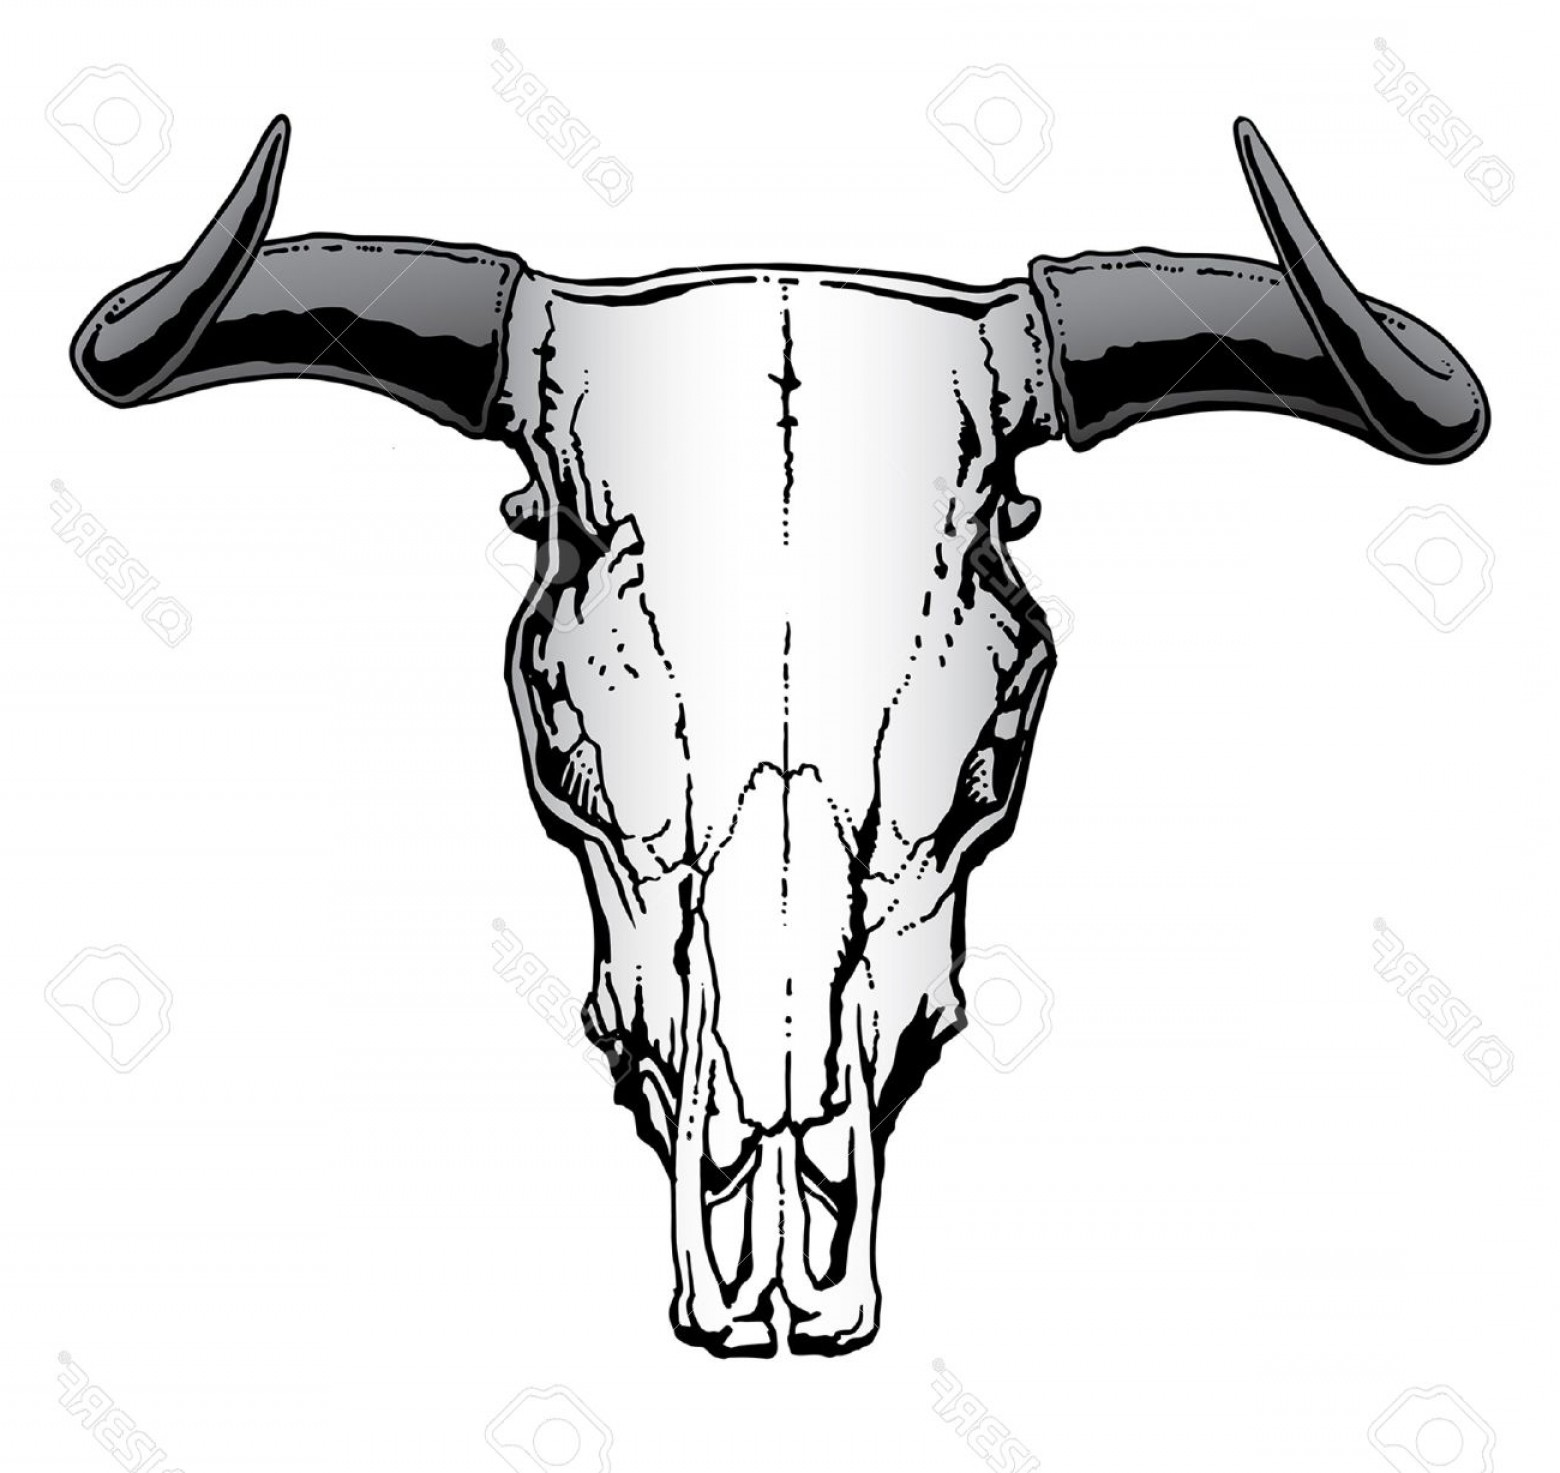 Longhorn Skull Vector: Photostock Vector Western Bull Or Steer Skull Illustration